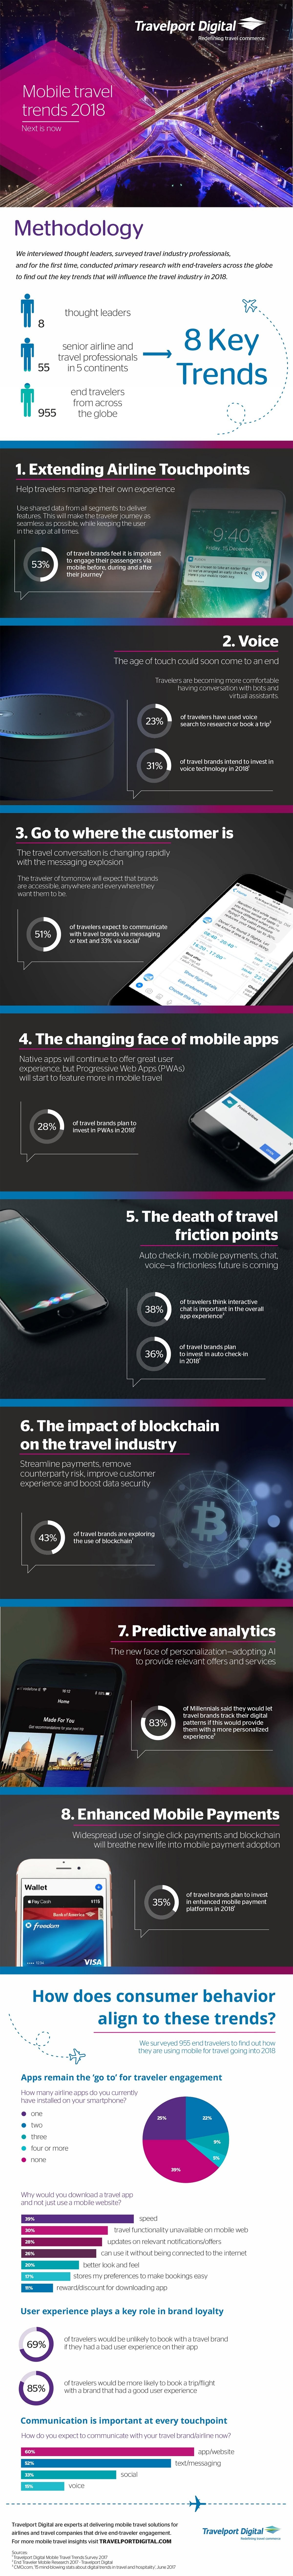 Mobile Travel Trends 2018